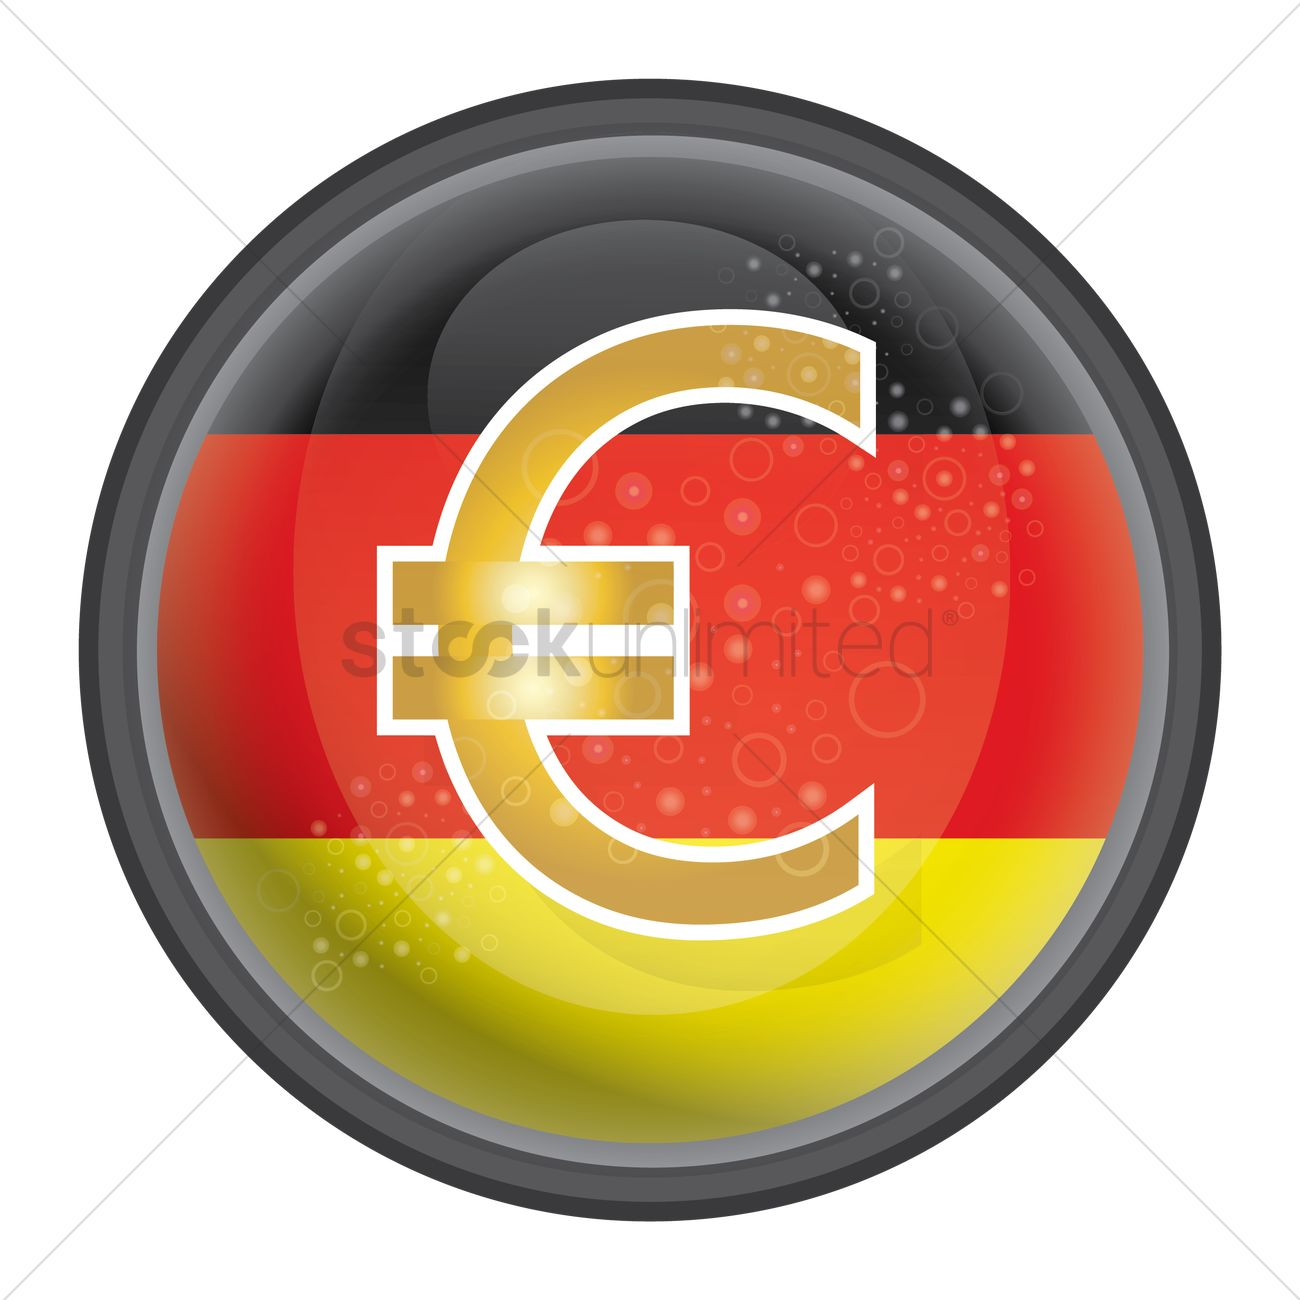 Euro symbol with german flag icon vector image 1953999 euro symbol with german flag icon vector graphic biocorpaavc Images